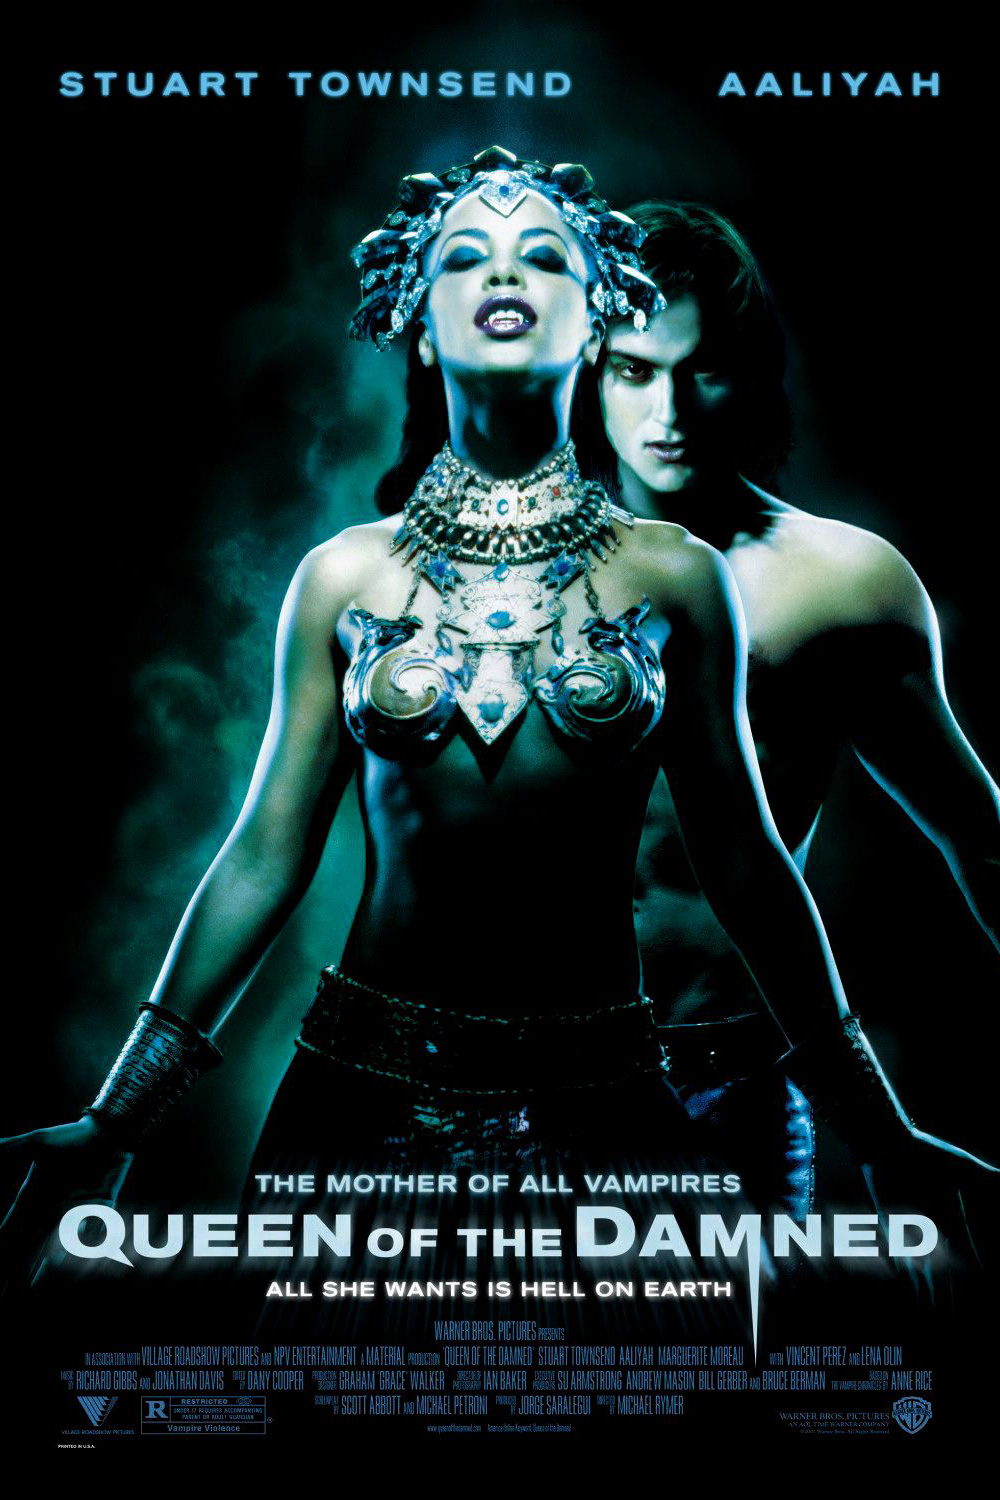 Queen of the Damned - Props Master